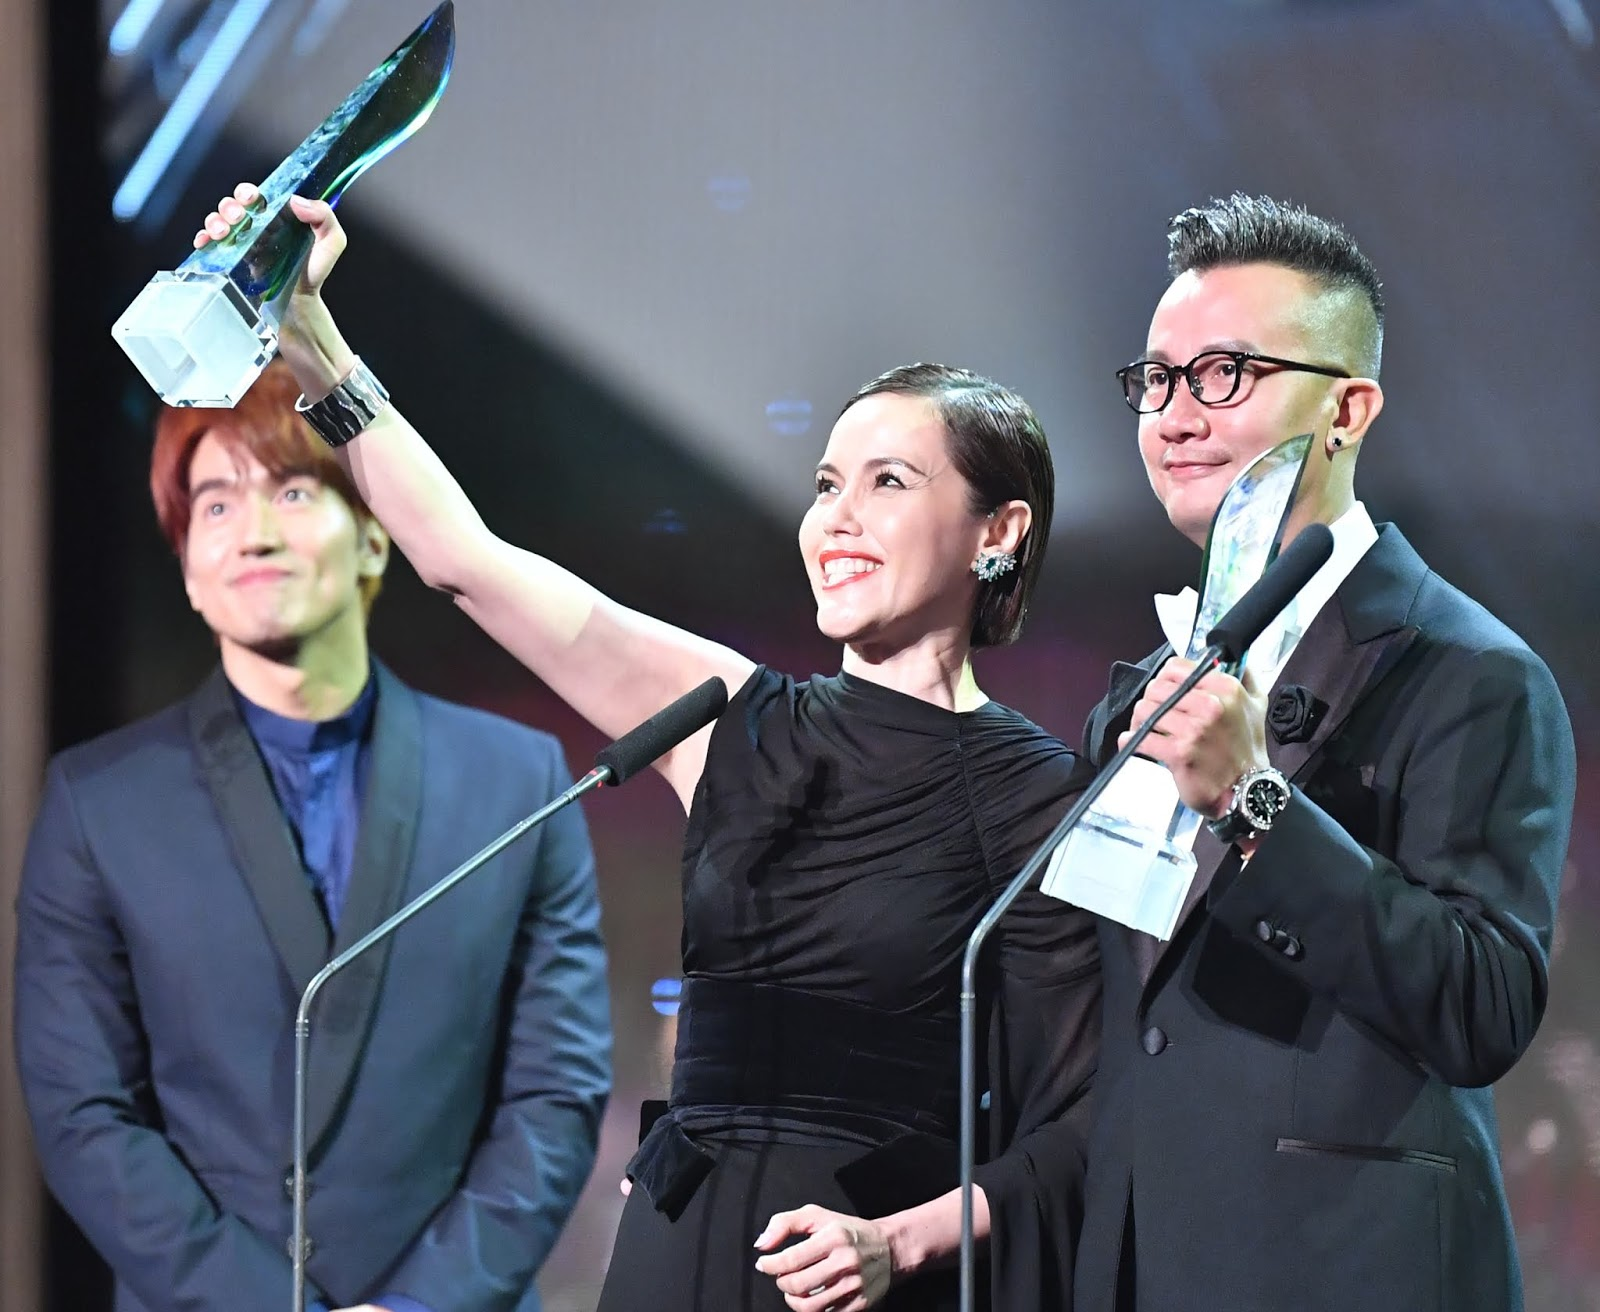 Zoe Tay and Chen Hanwei won Best Actress and Best Actor respectively